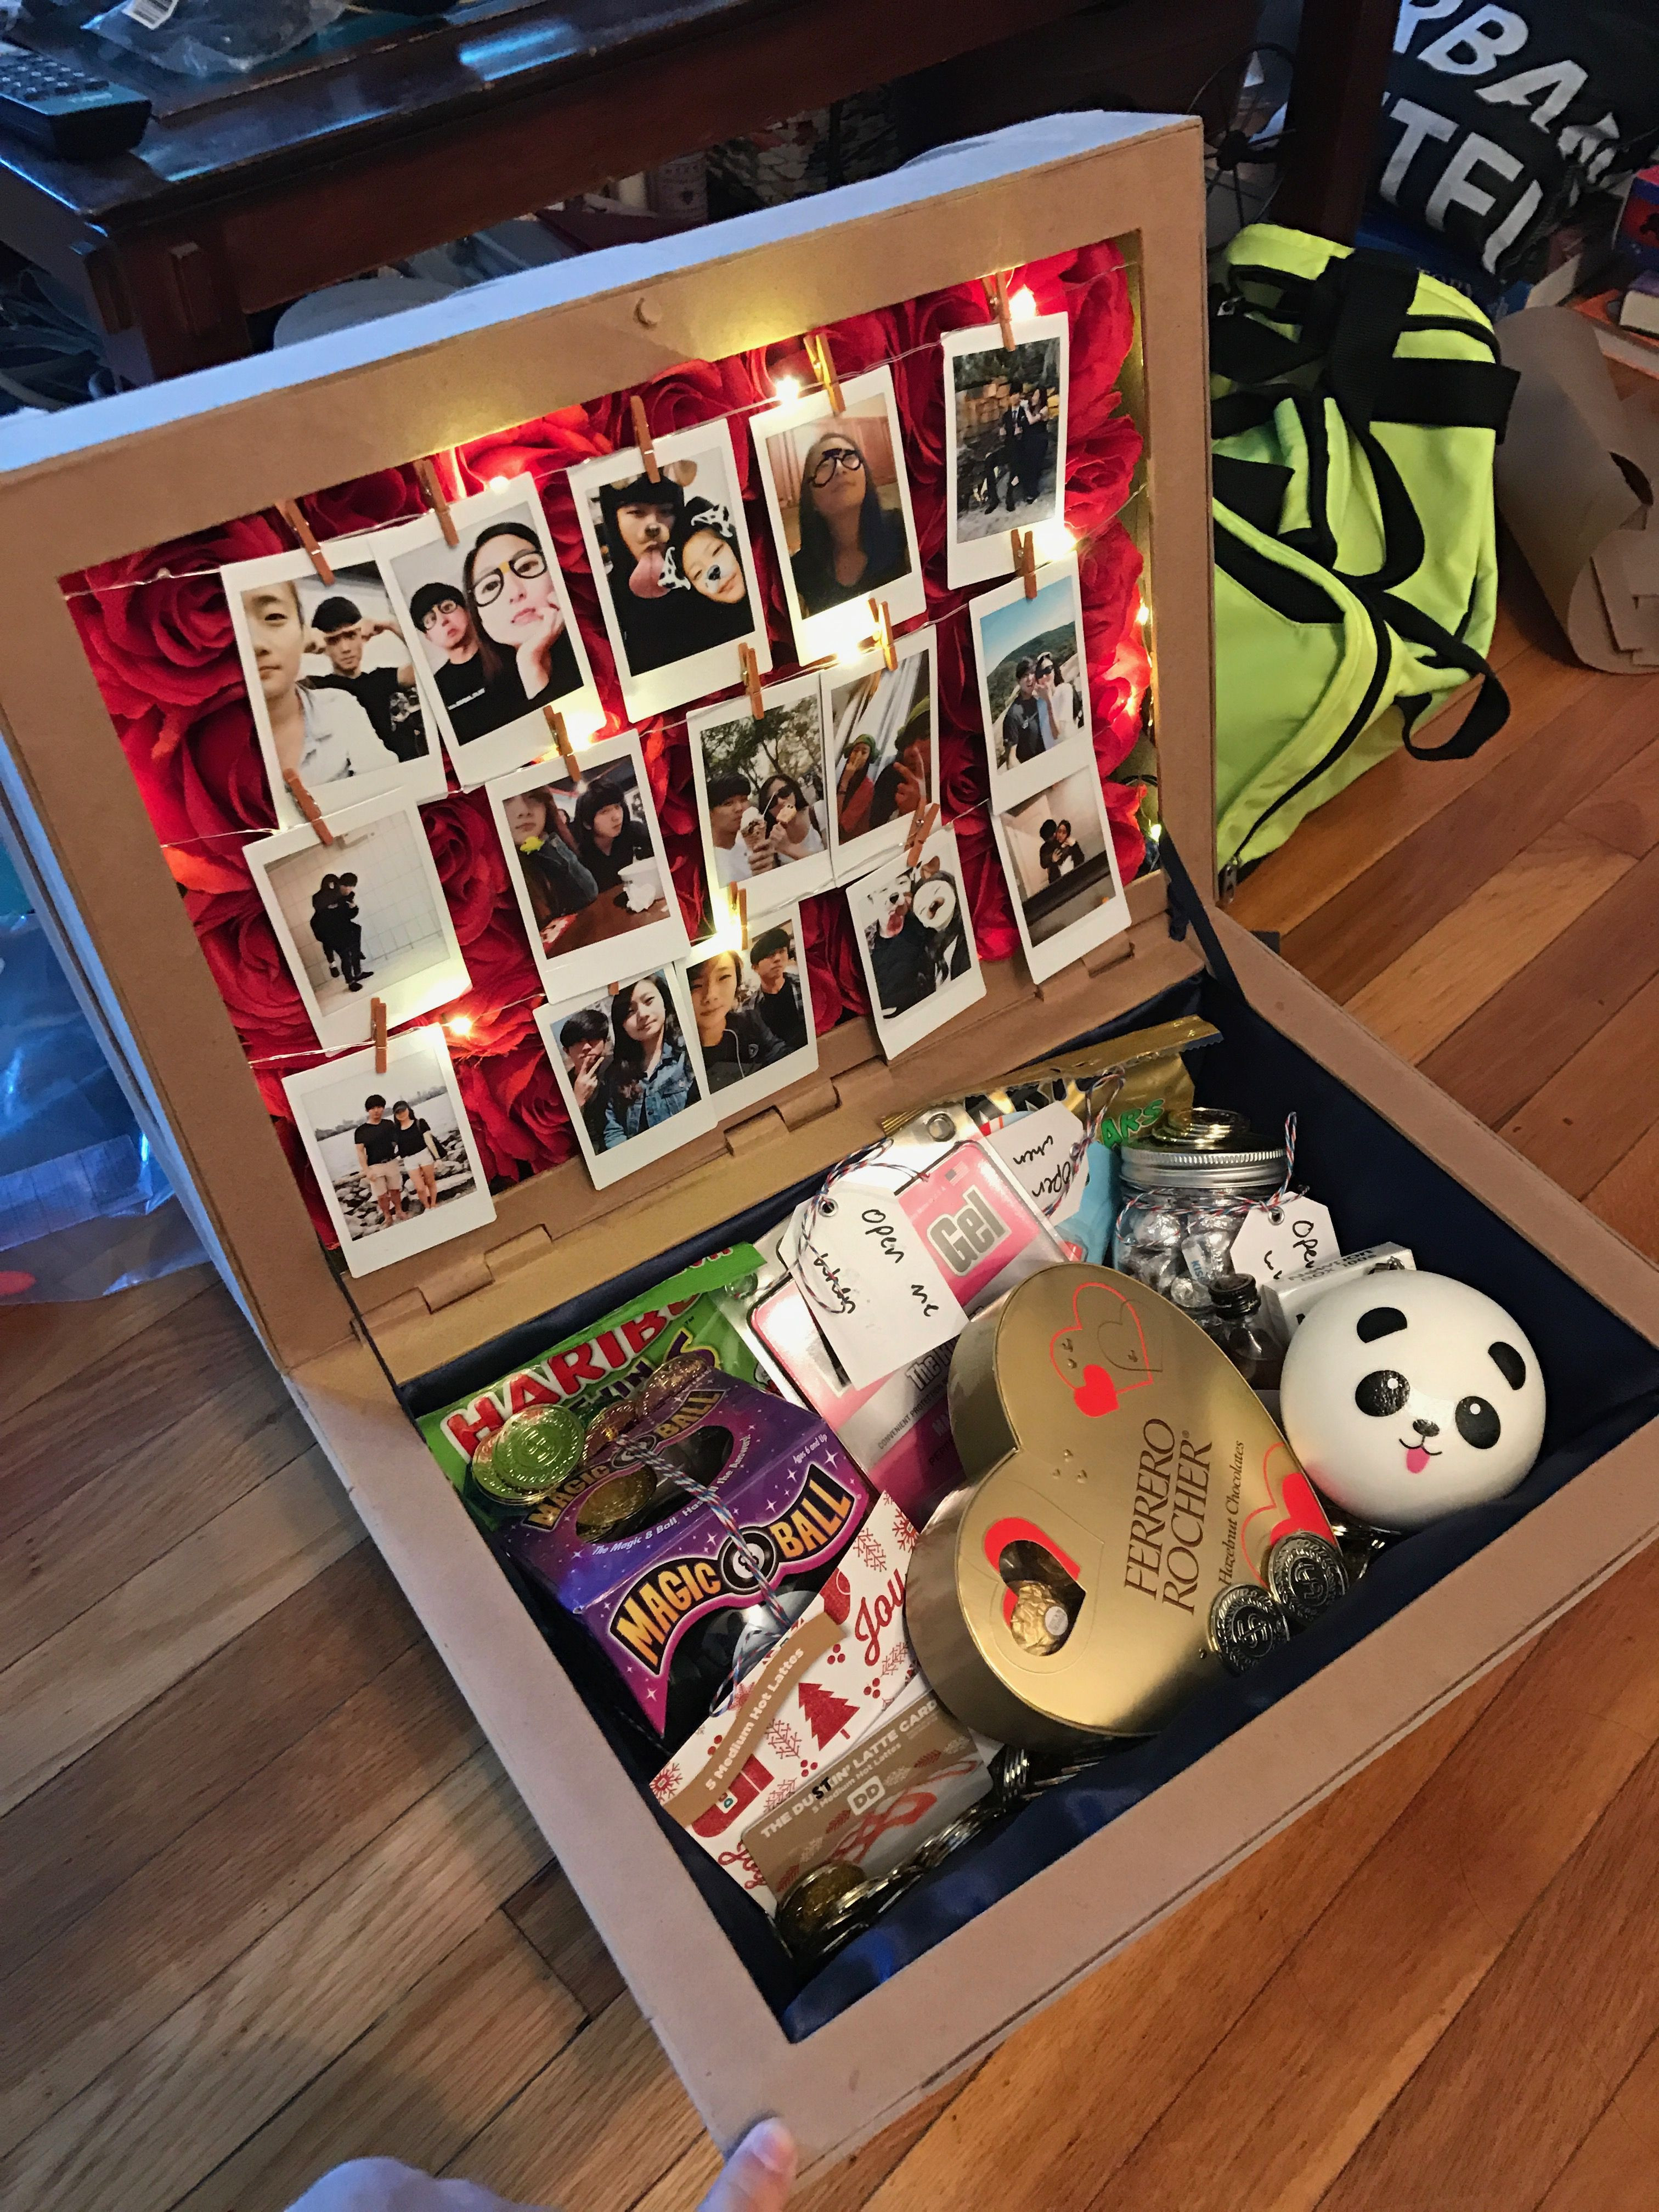 Best ideas about Girlfriend Christmas Gift Ideas . Save or Pin I made a Treasure Chest out of paper for my girlfriend Now.